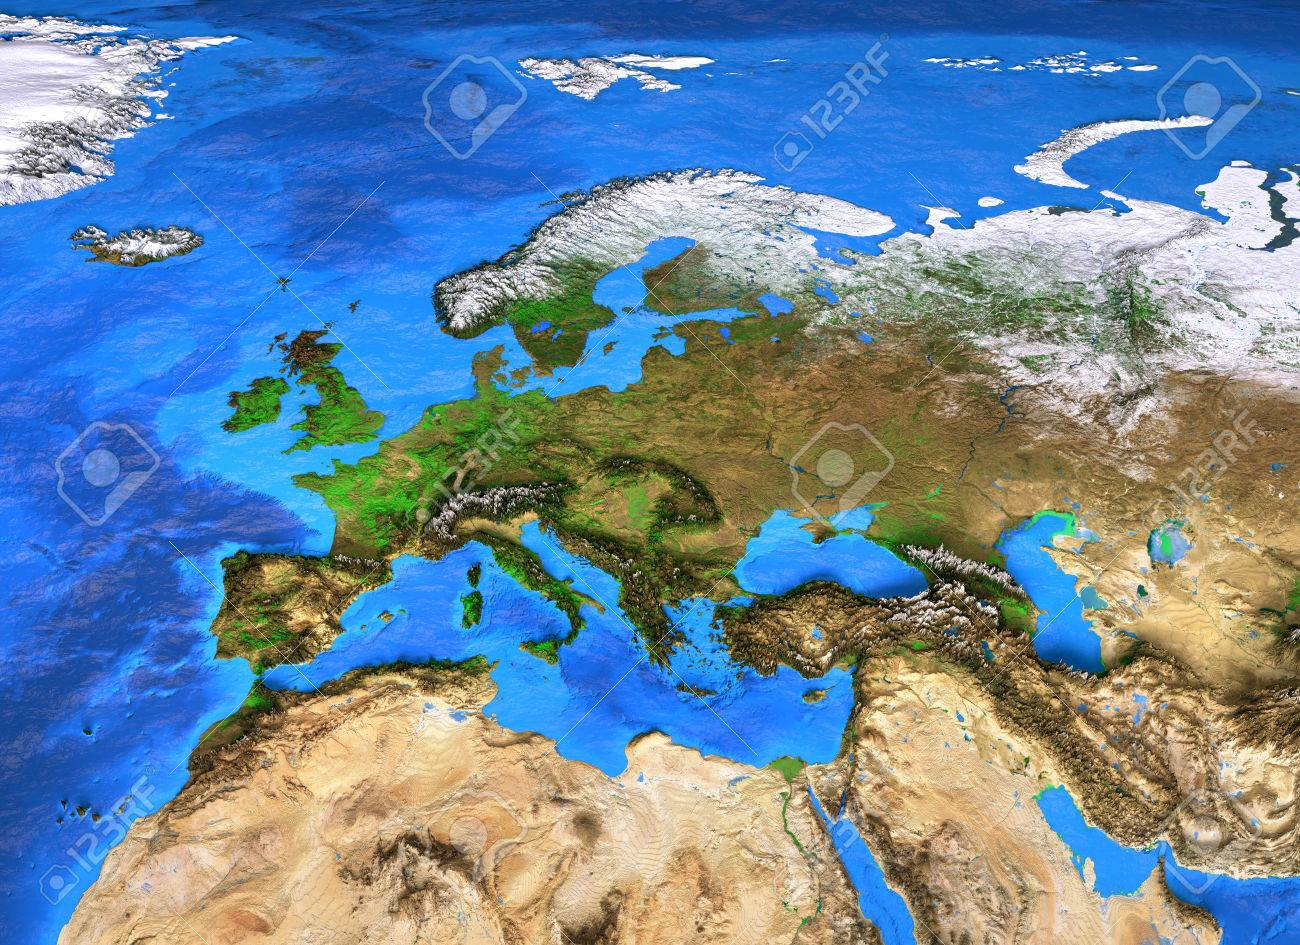 Europe Map Detailed Satellite View Of The Earth And Its Landforms